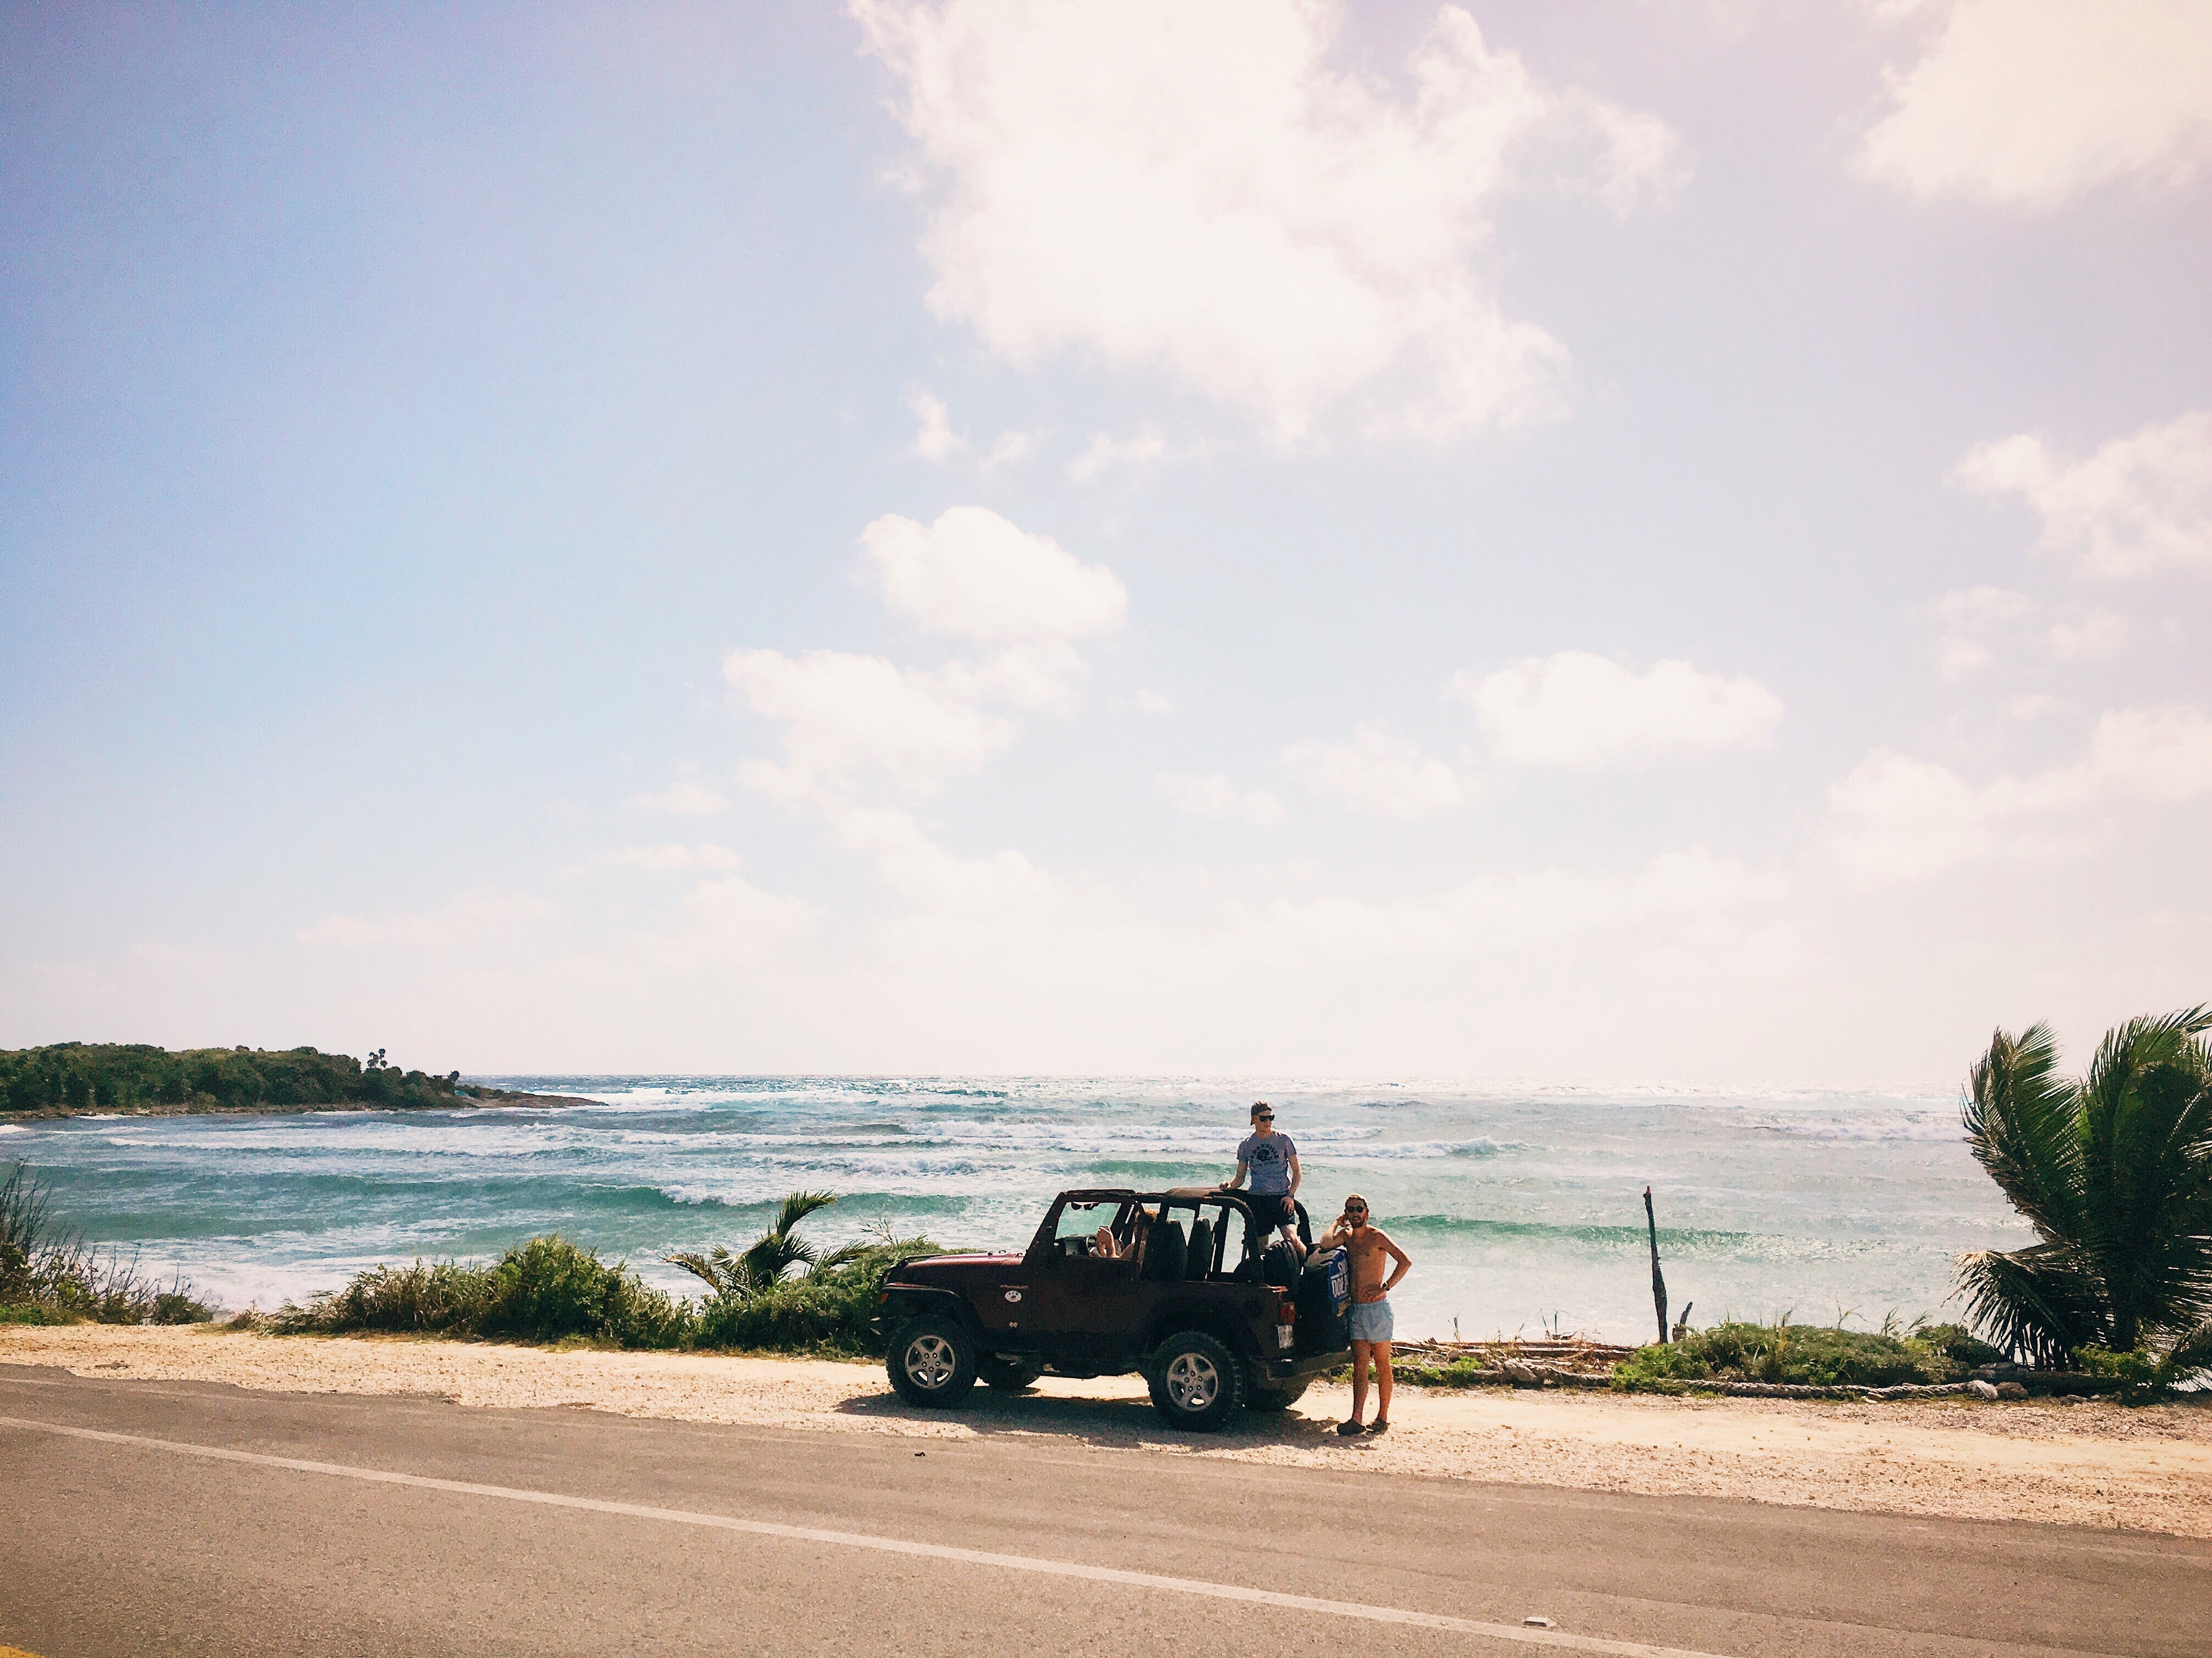 Two men by a small jeep on a coastline road at Cozumel